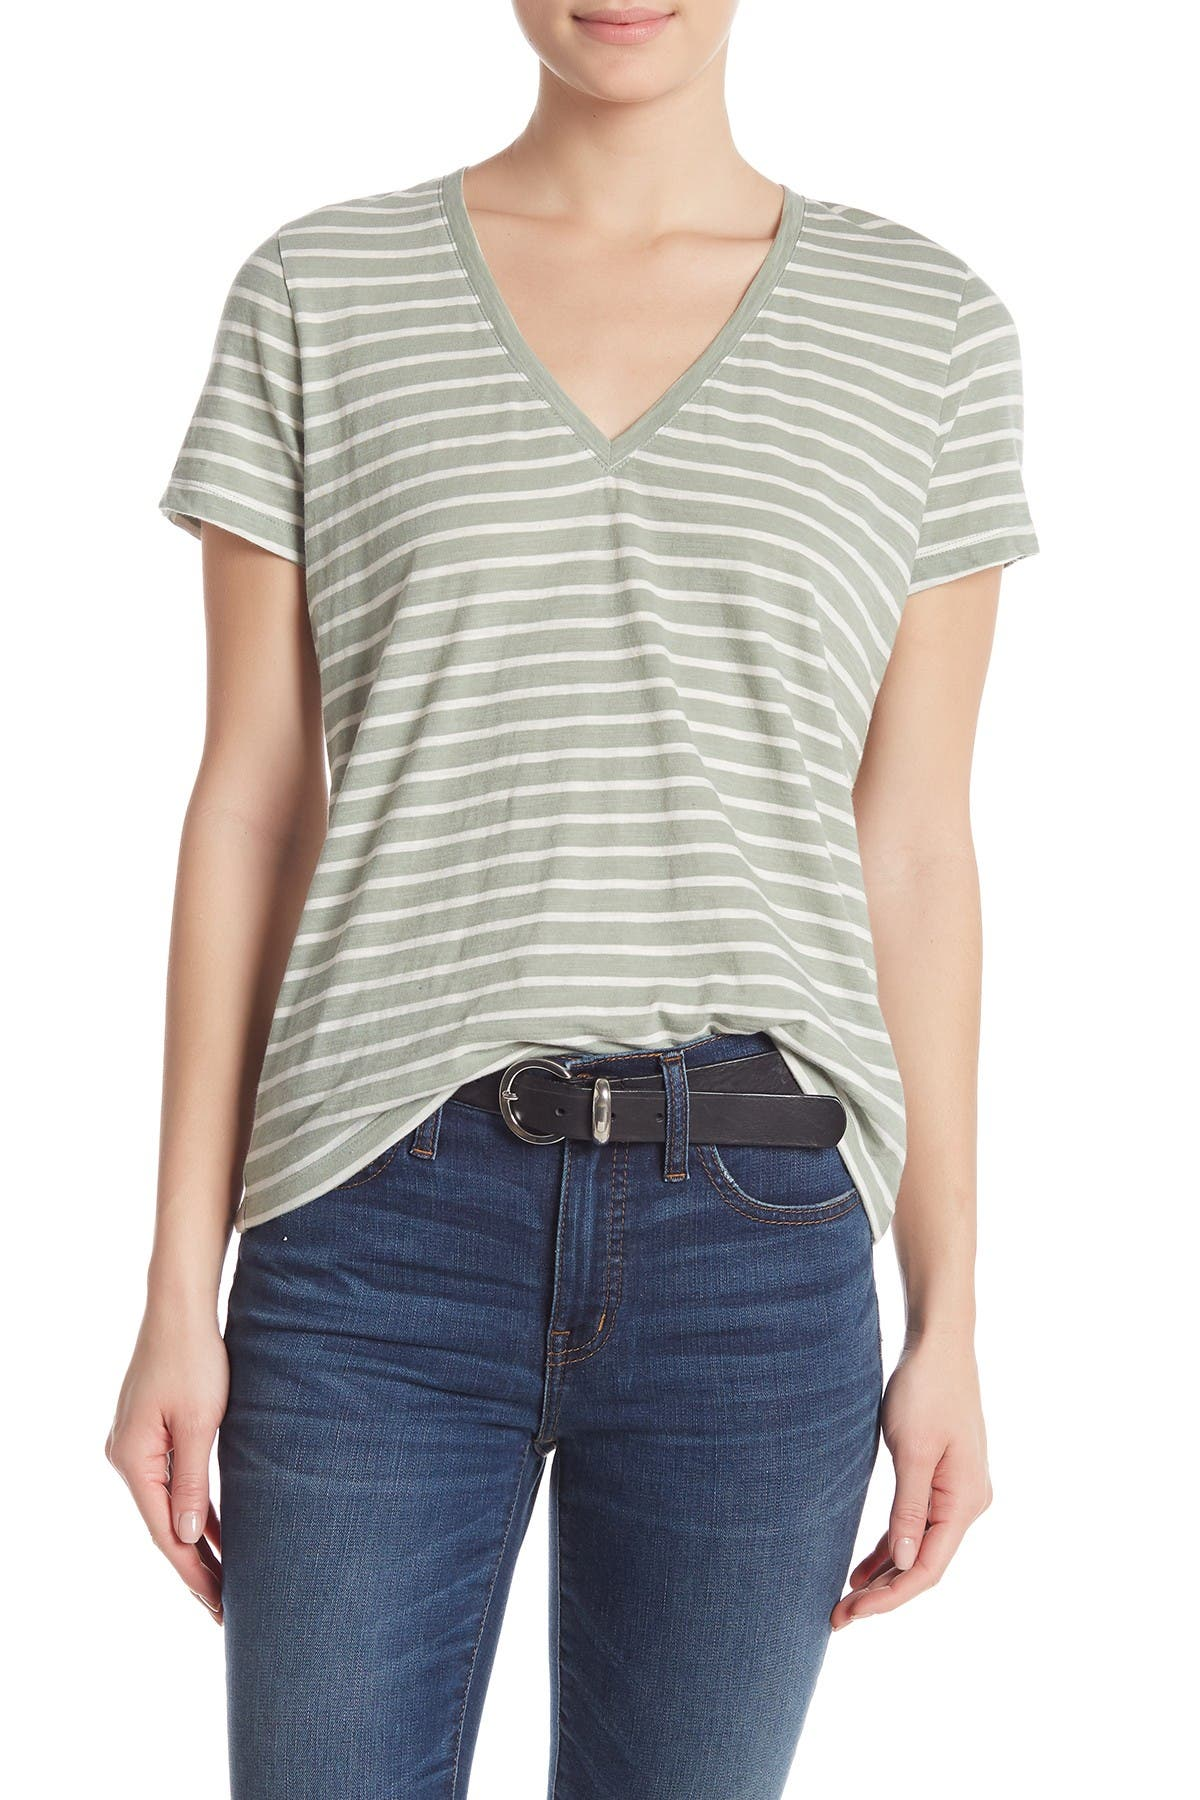 Image of Madewell Theresa Striped V-Neck T-Shirt